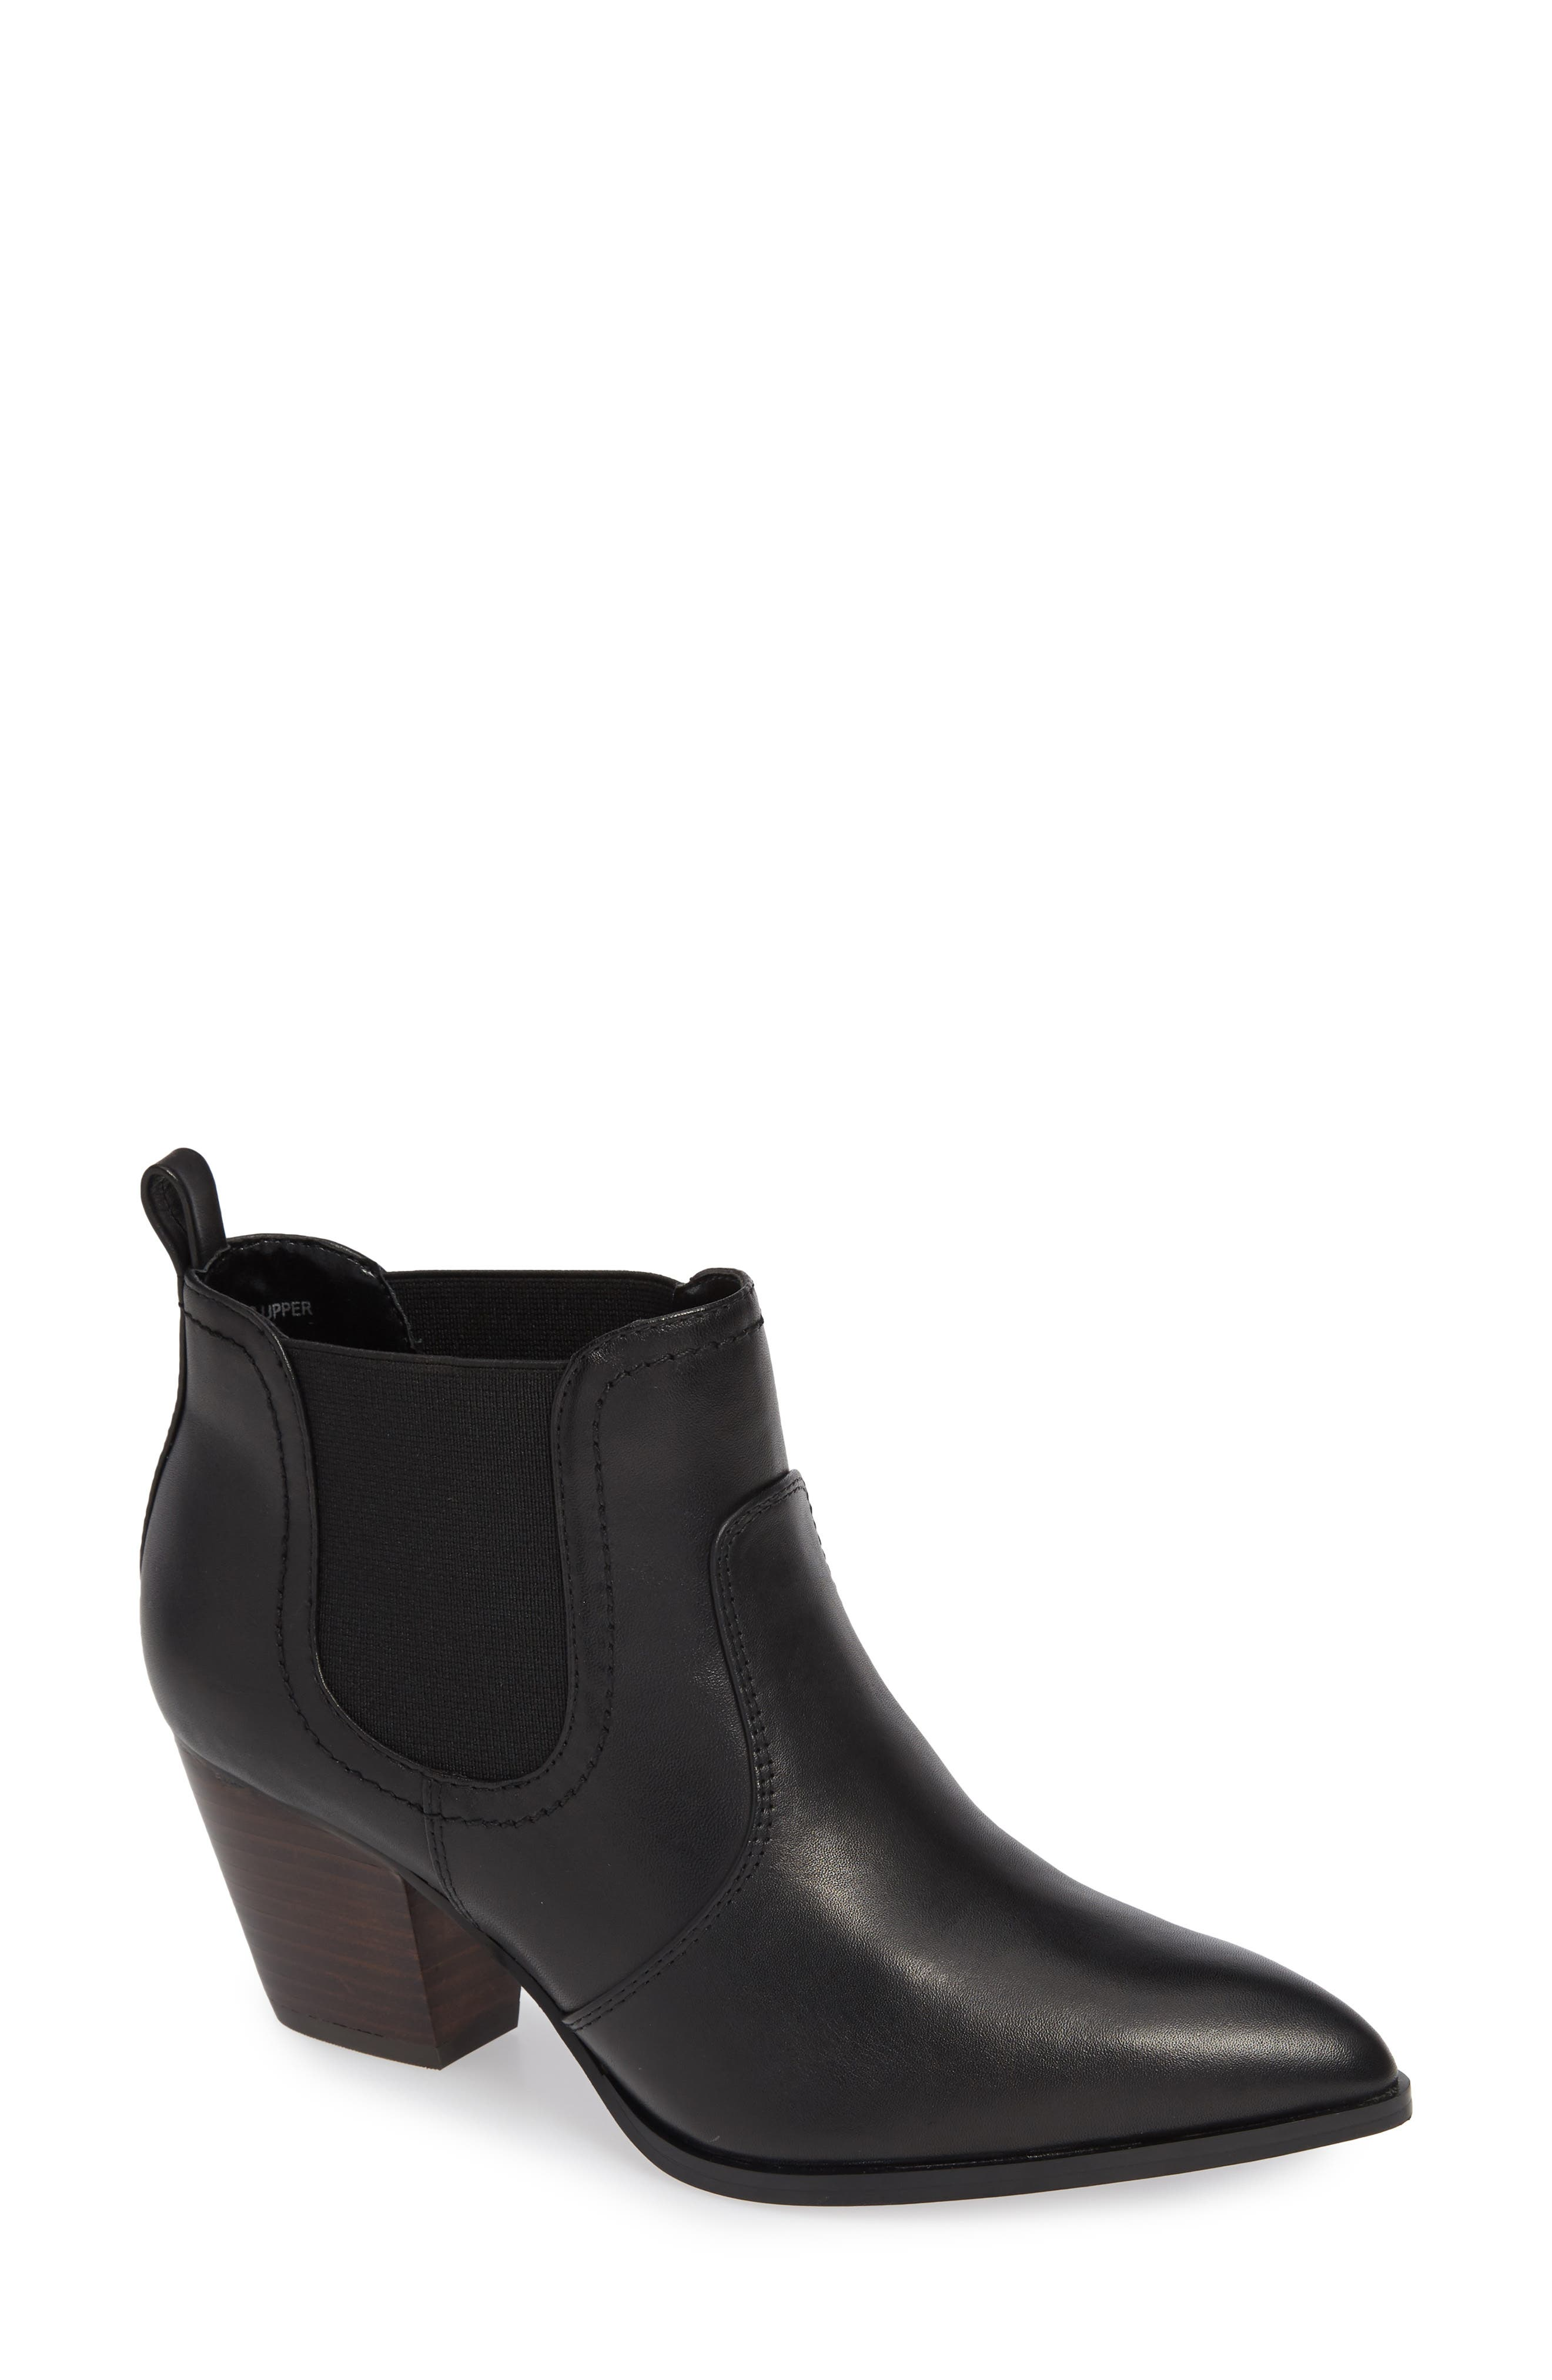 BELLA VITA Emerson Chelsea Bootie, Main, color, BLACK LEATHER